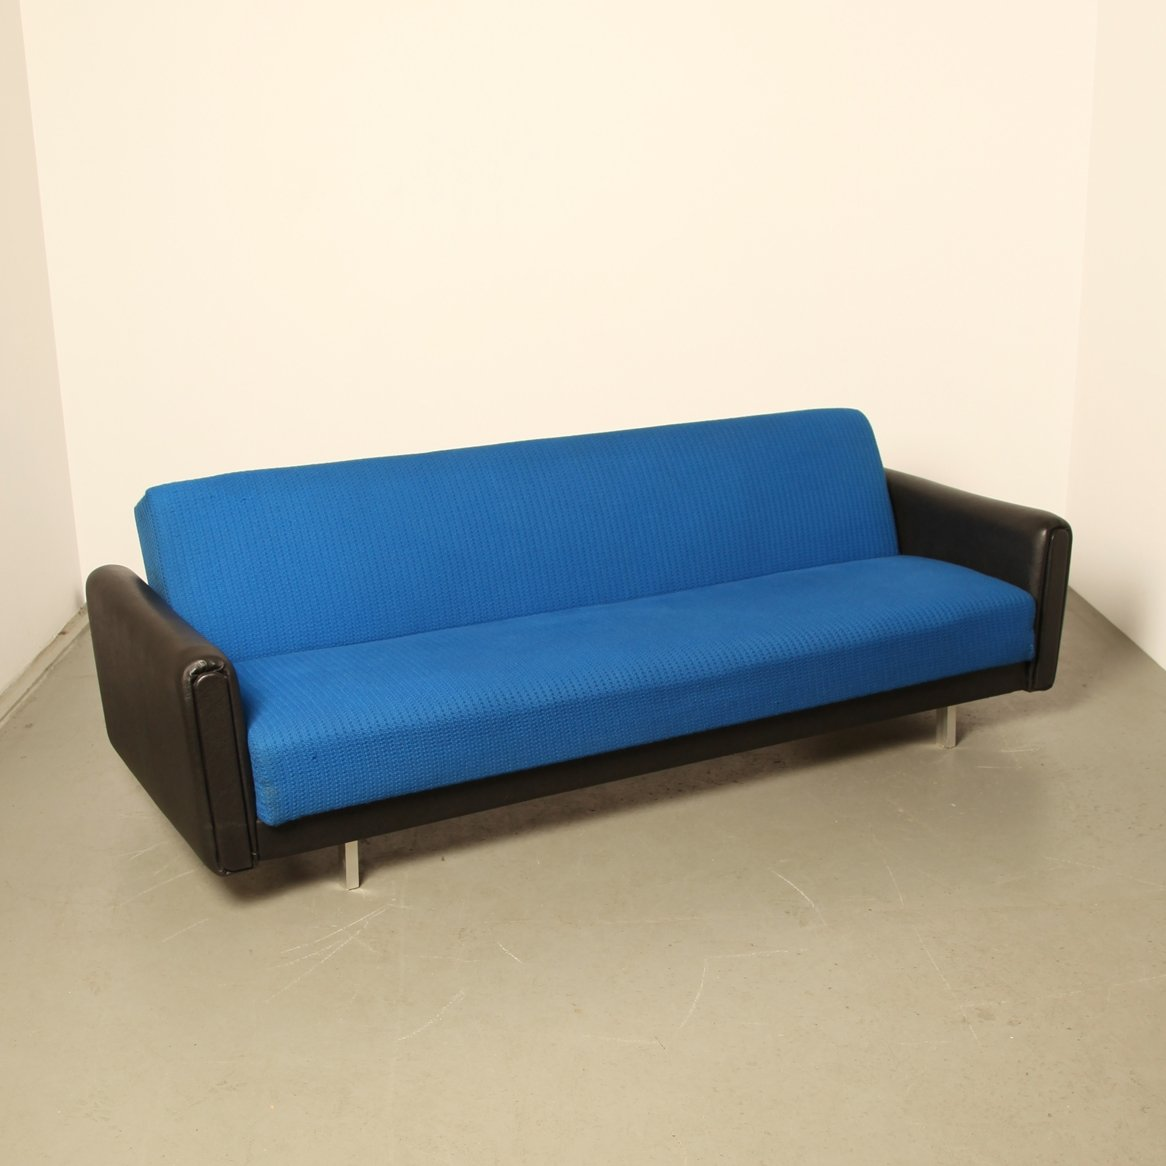 Hans Wegner Sofa Bed